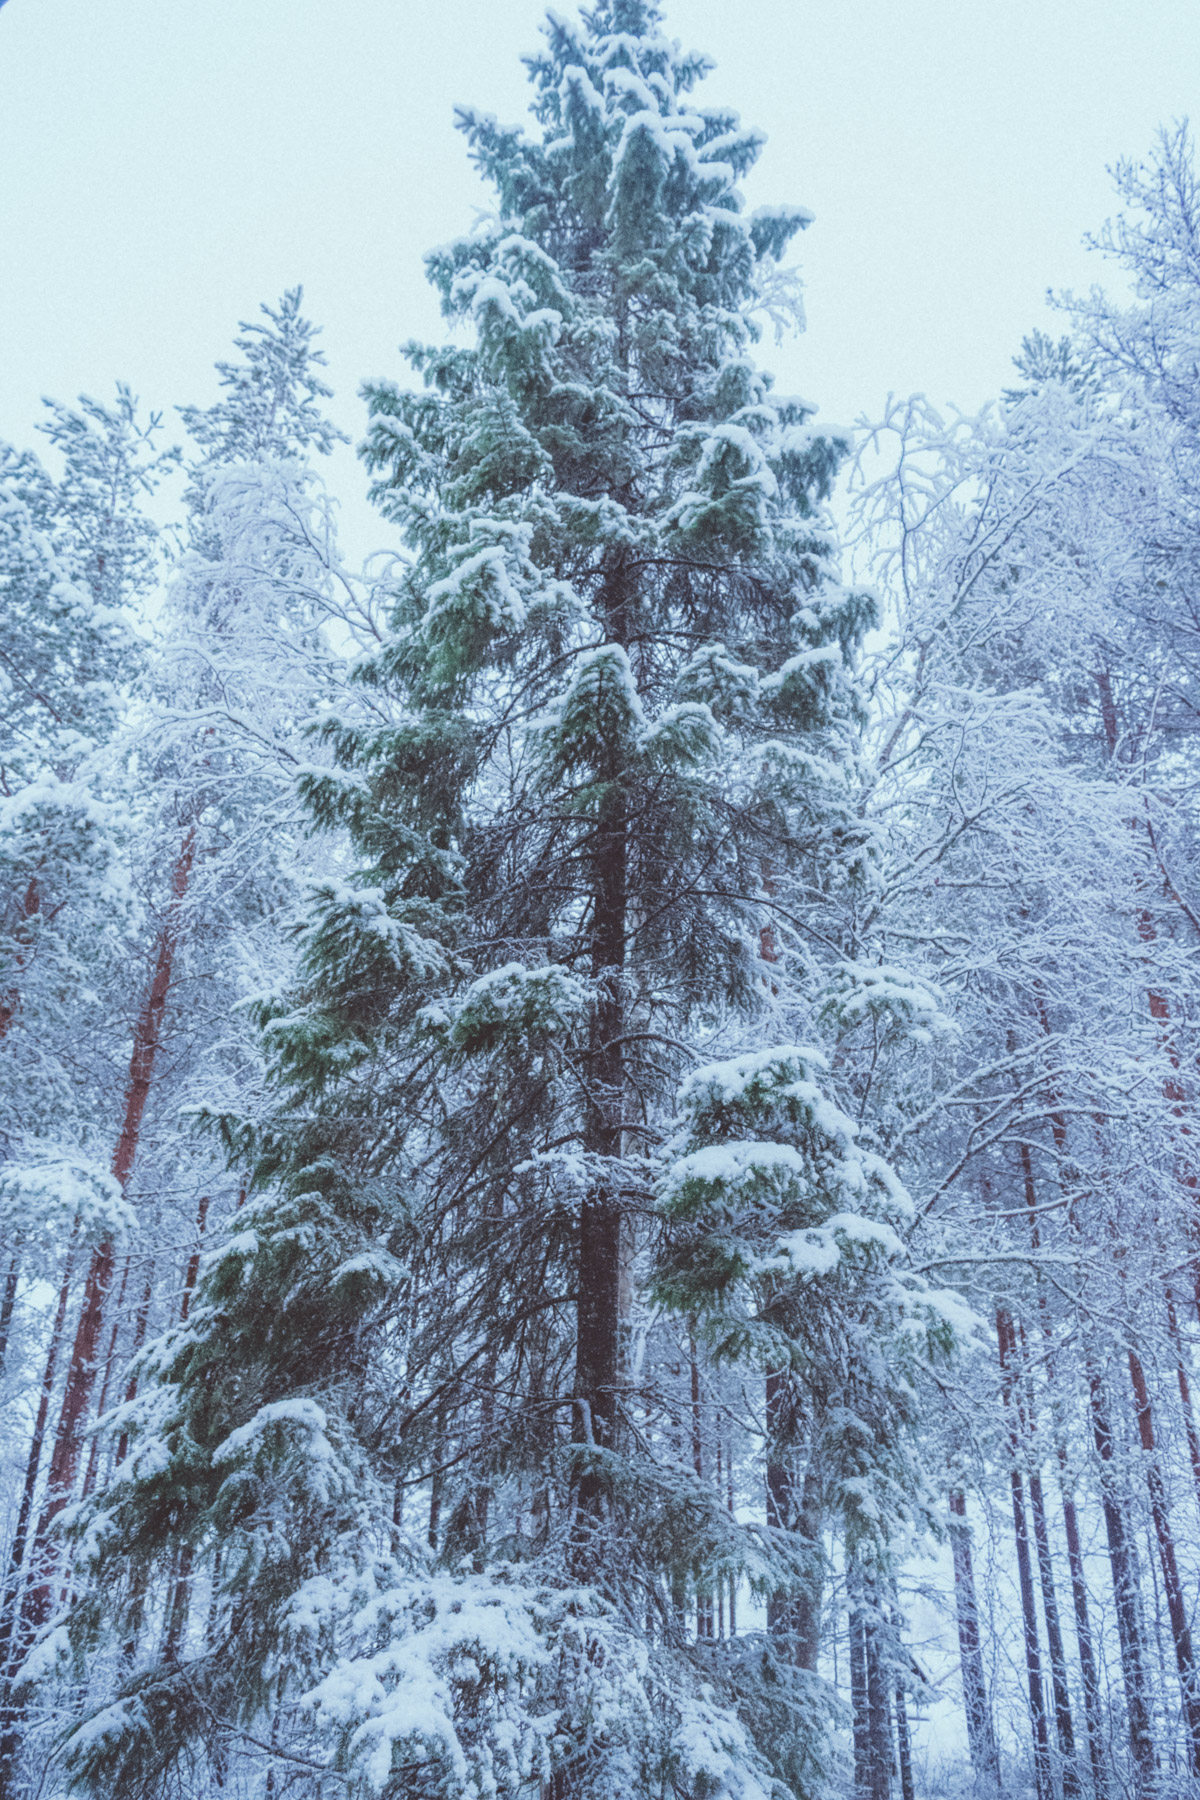 Magestic tree covered in snow in Yli-Ii